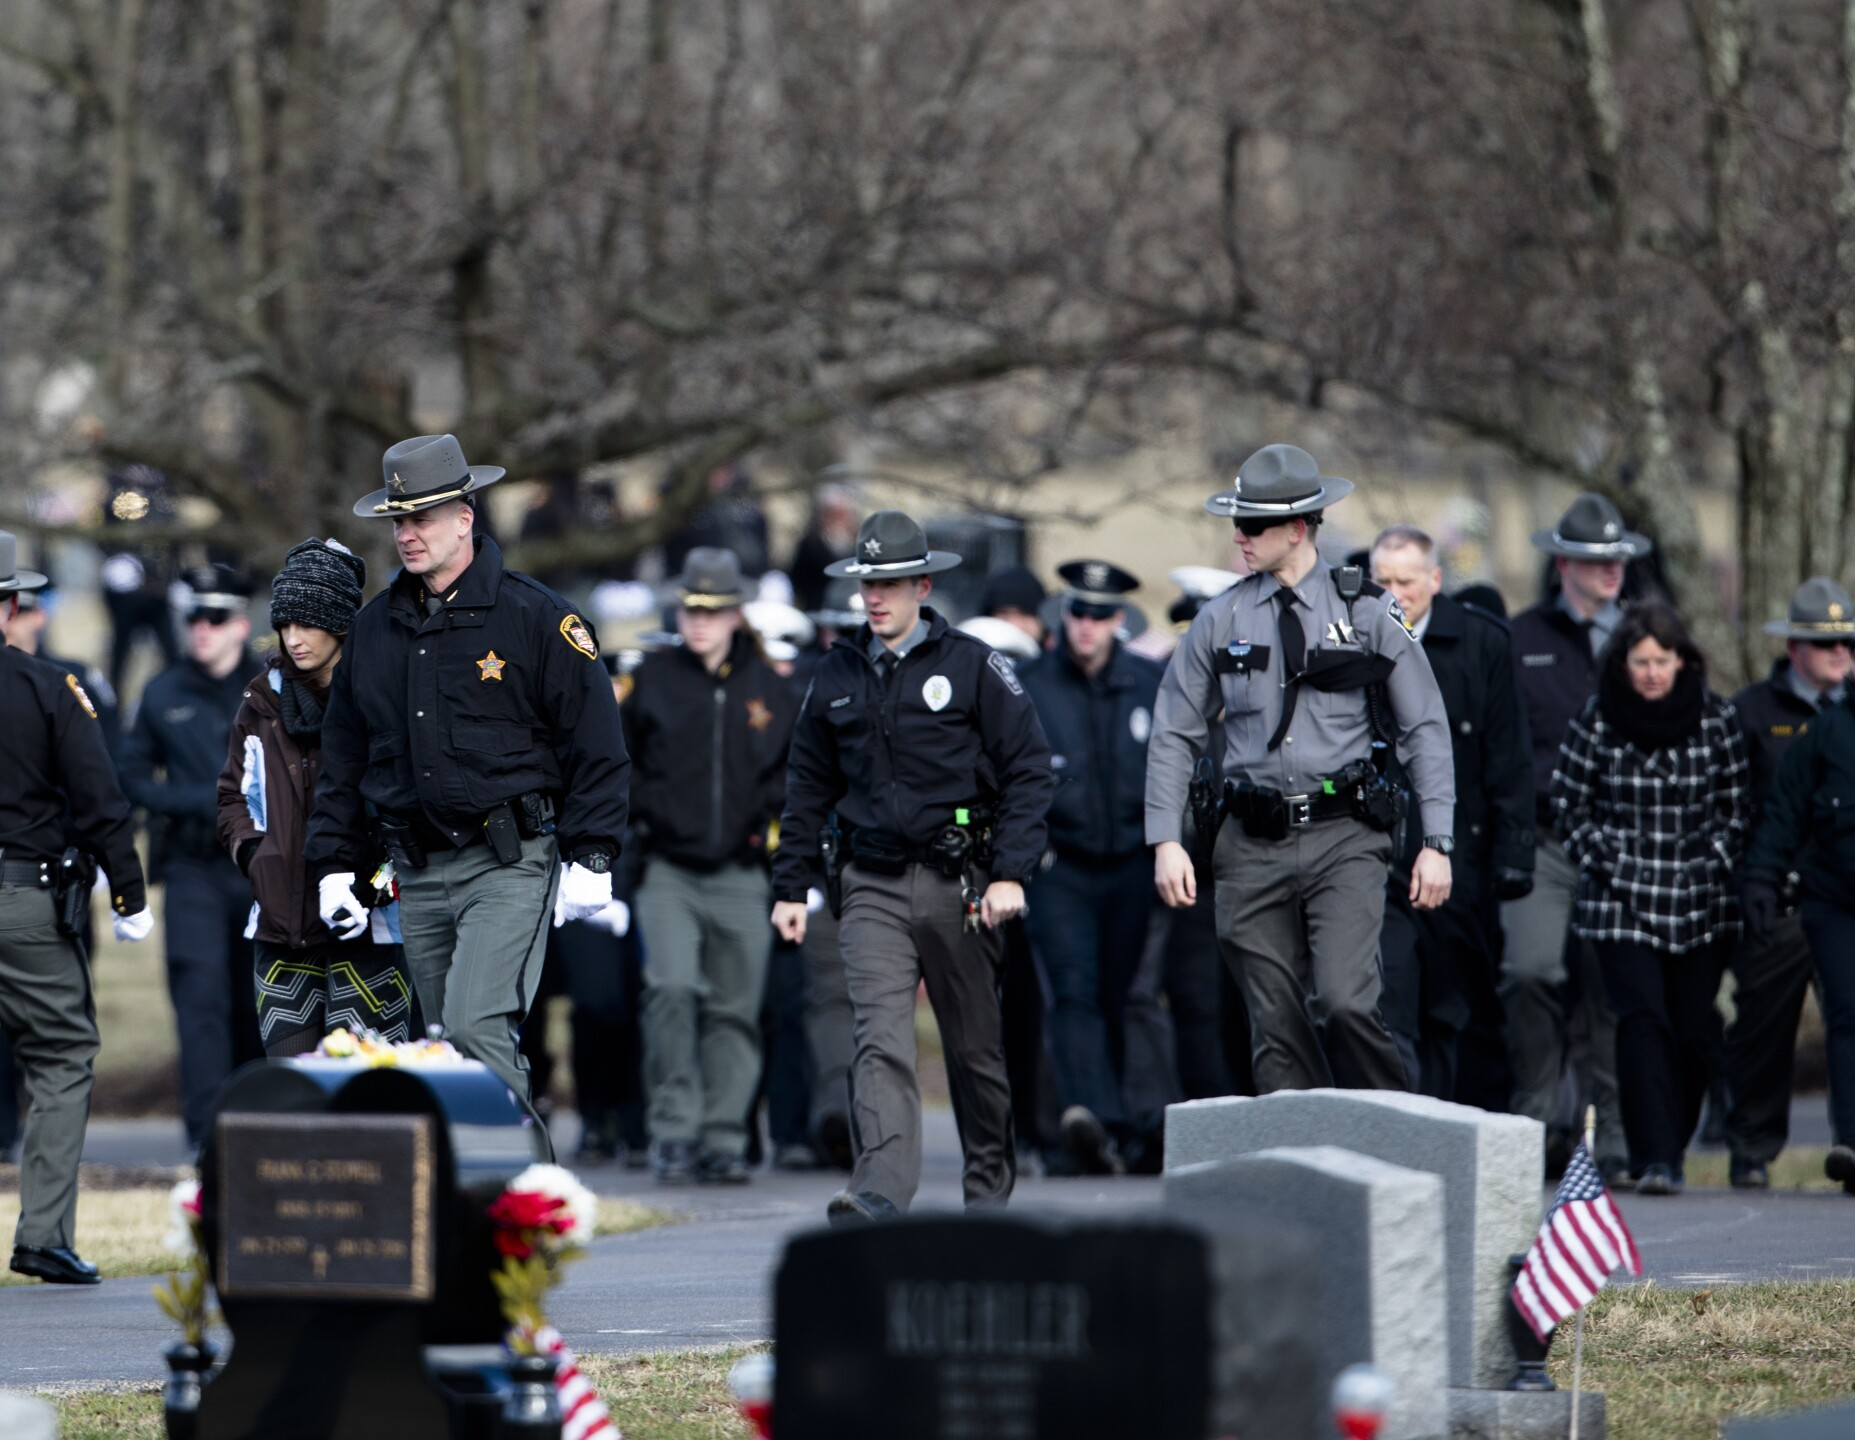 Police Burial Cemetary  139